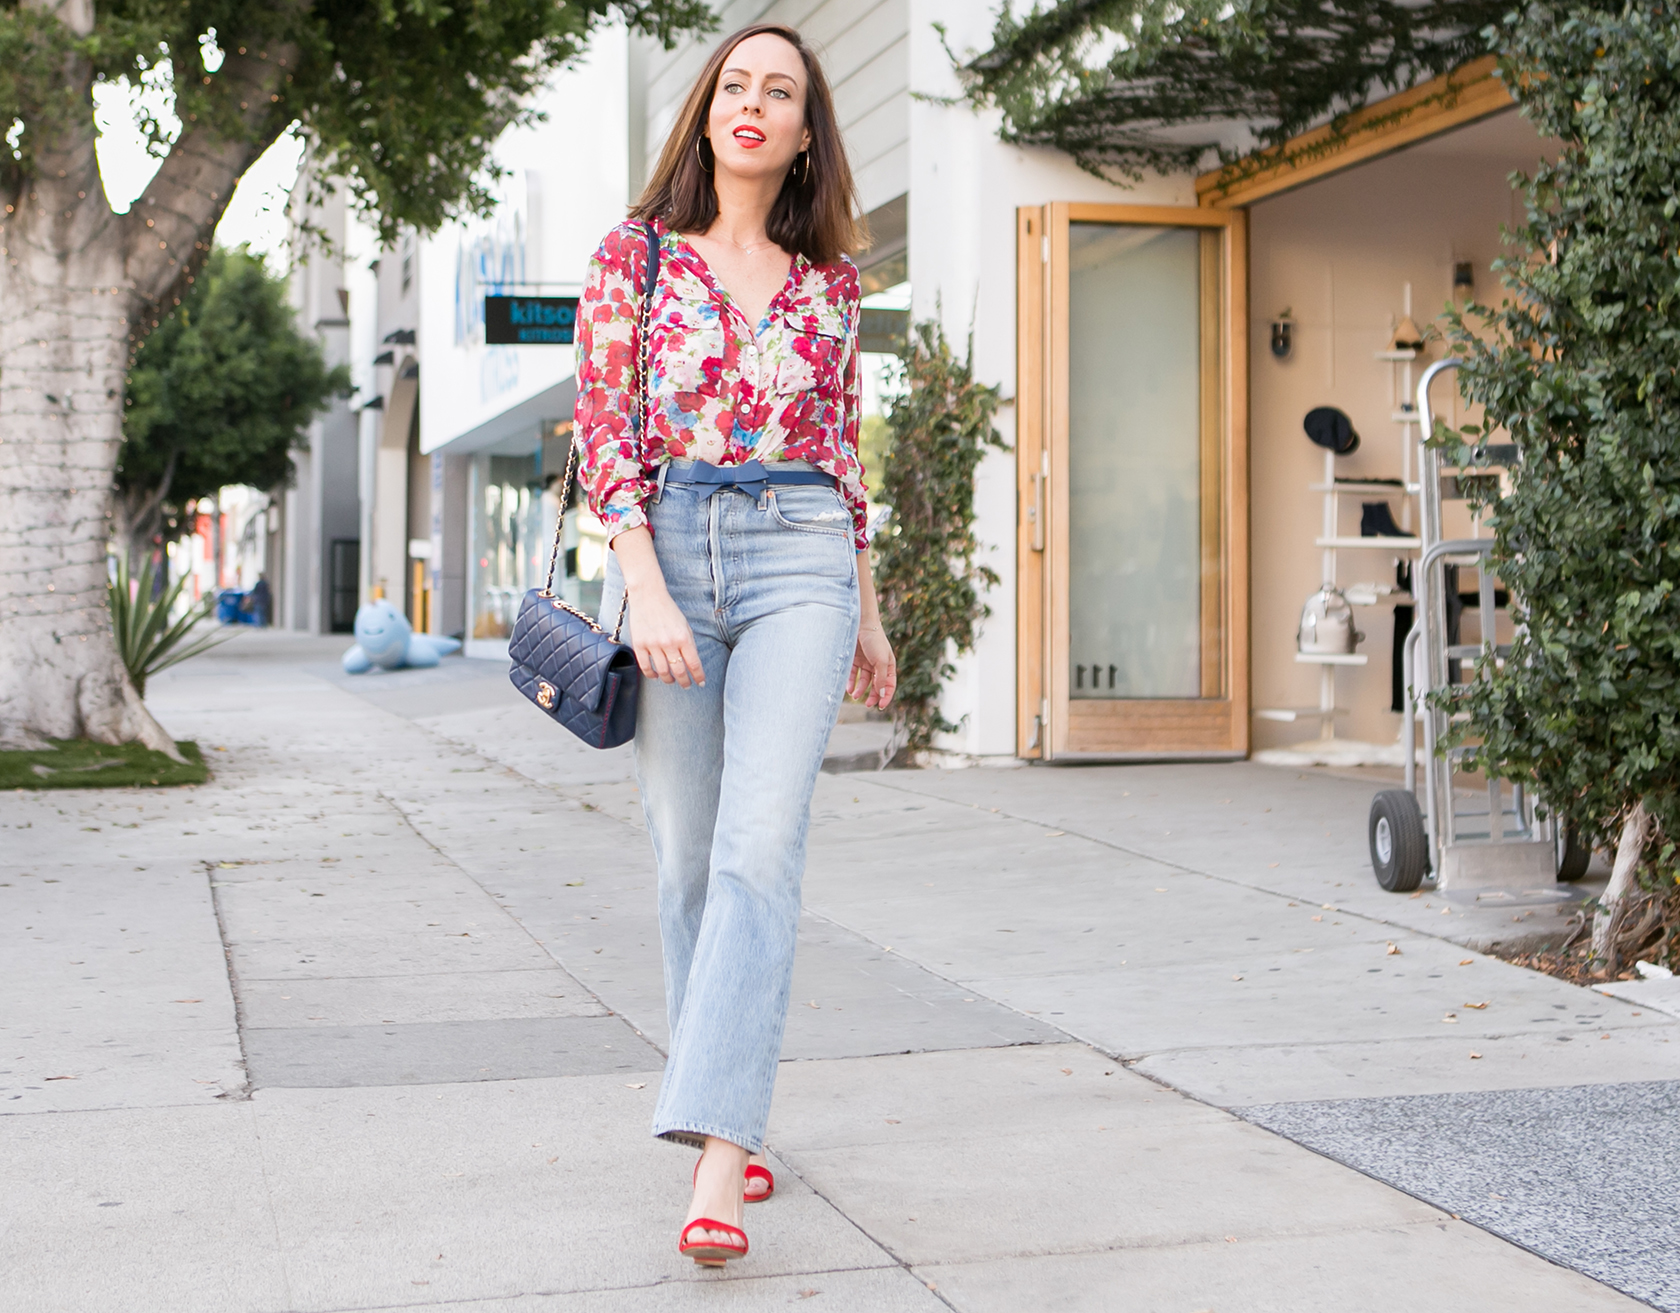 Sydne Style Shows How To Wear High Wasit Denim If You're